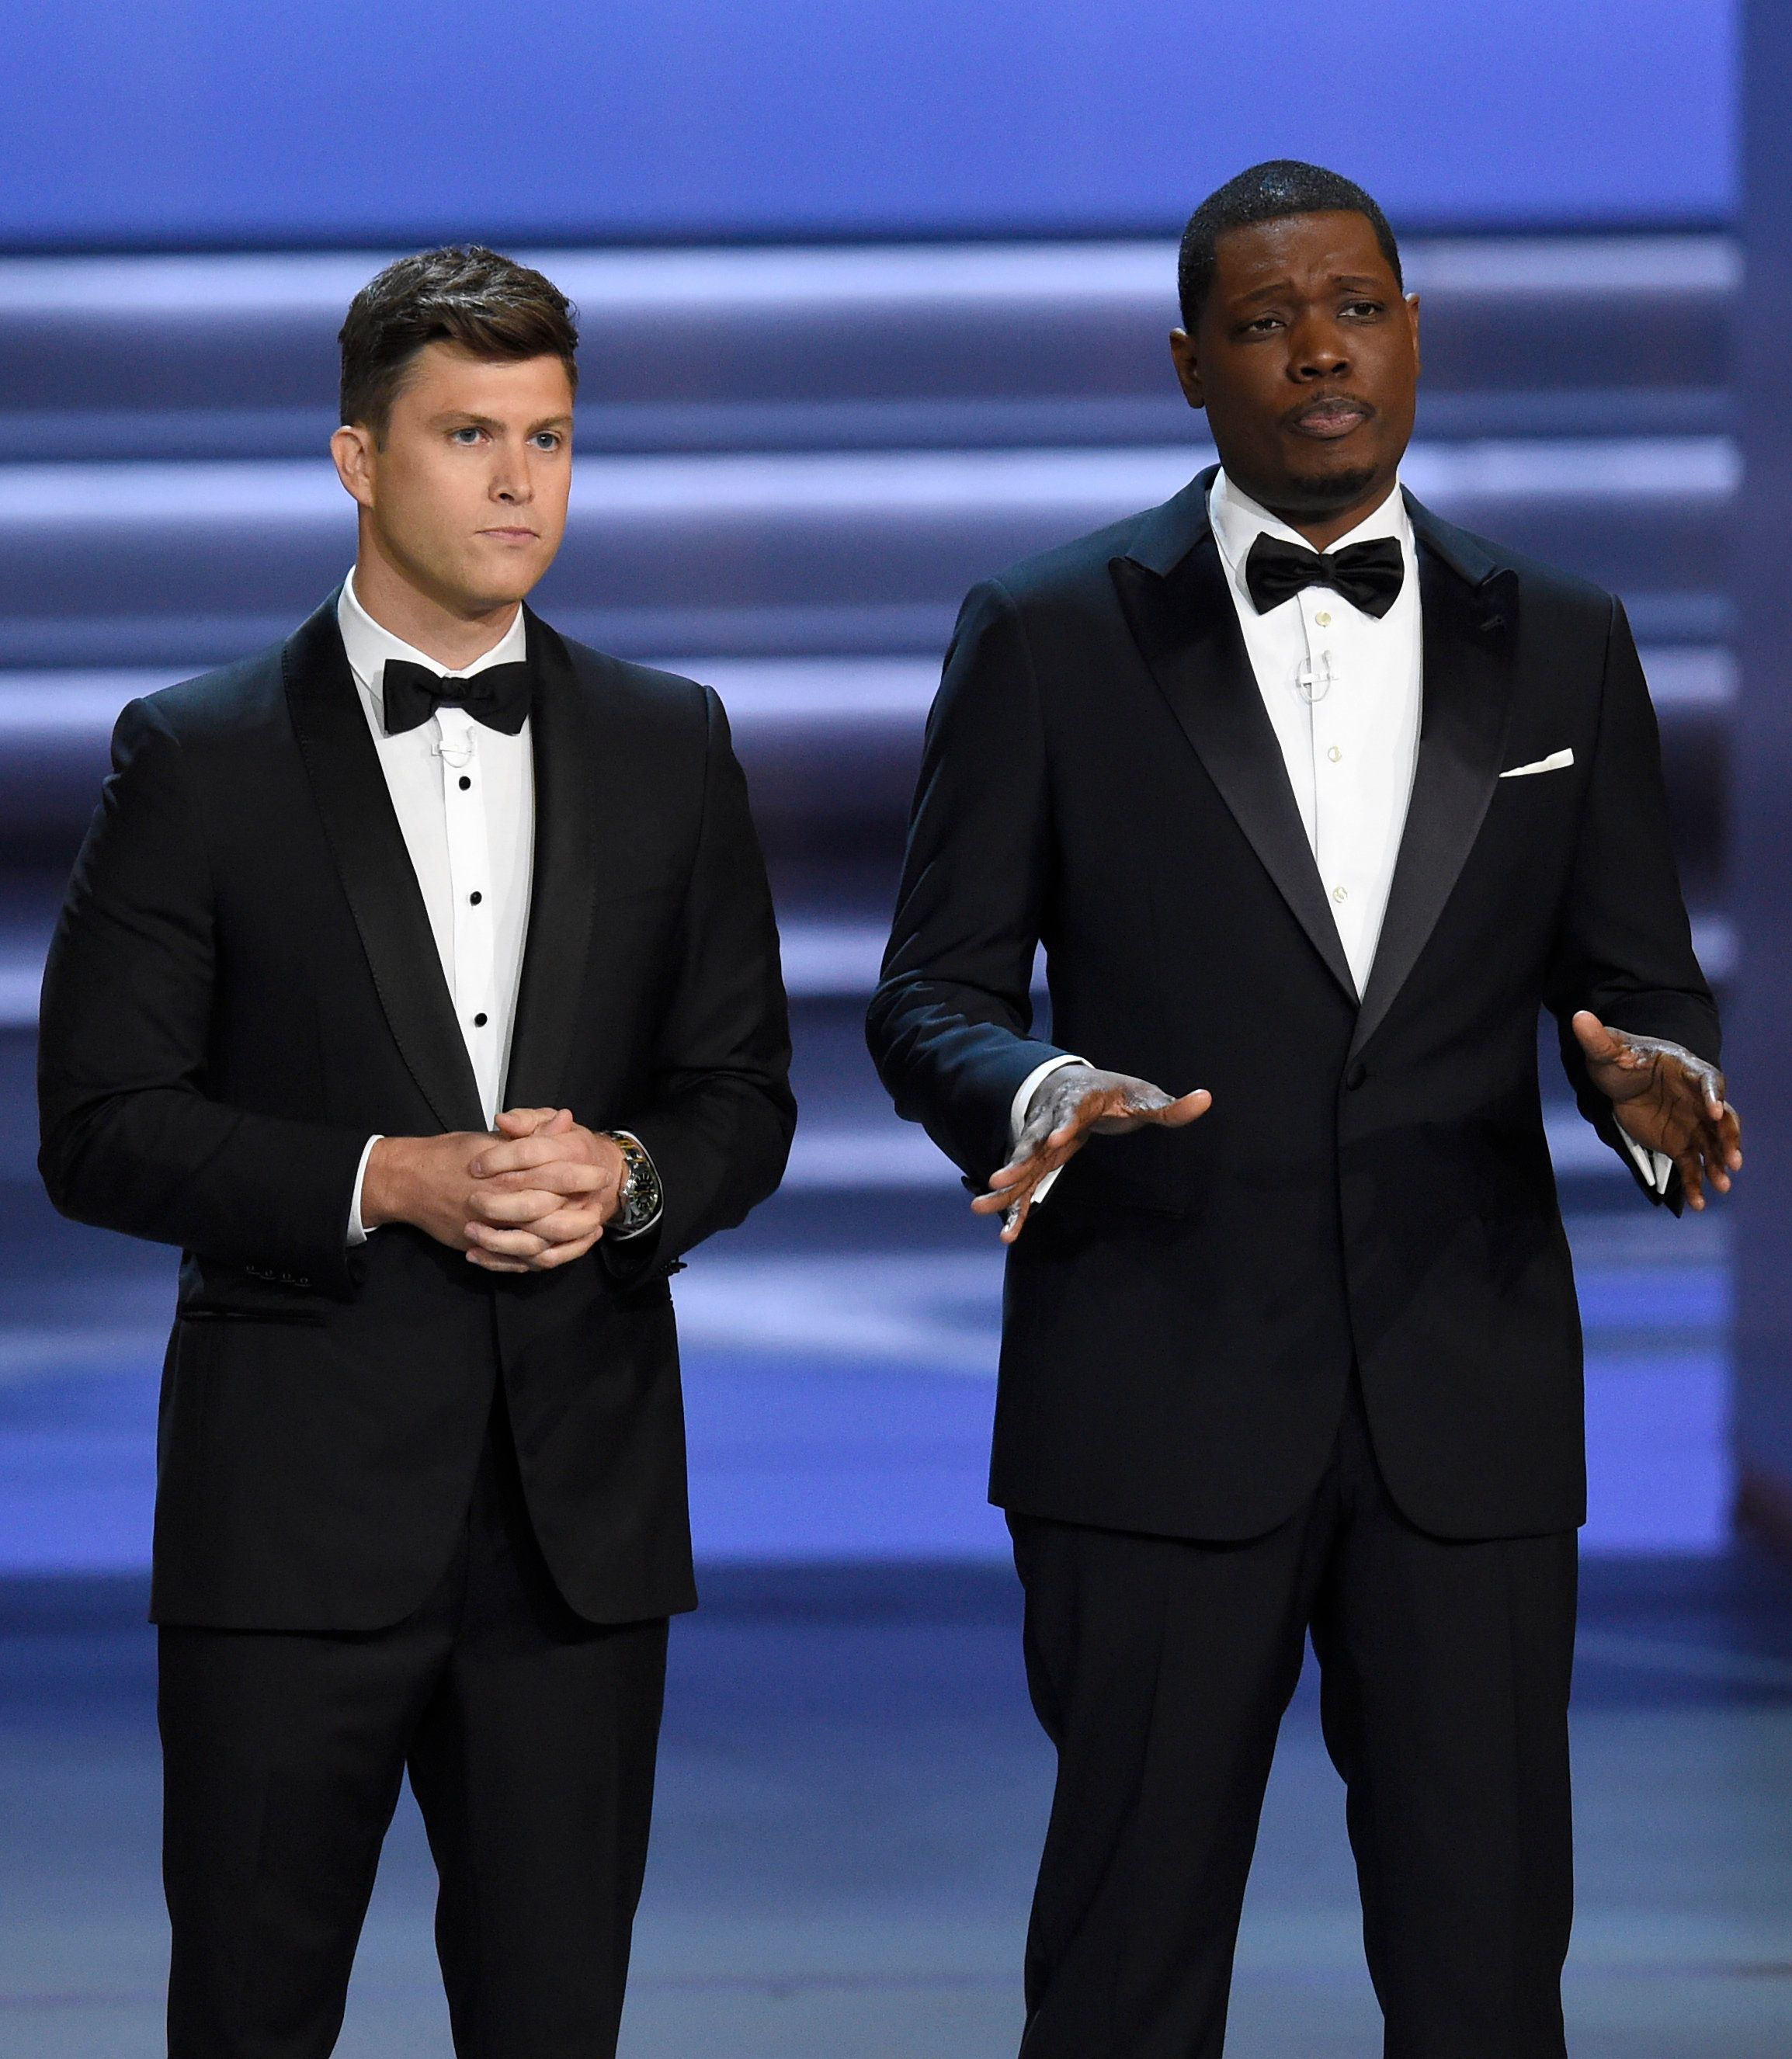 Michael Che Berates Culture Writer For Mocking 'SNL' Co-Star Colin Jost